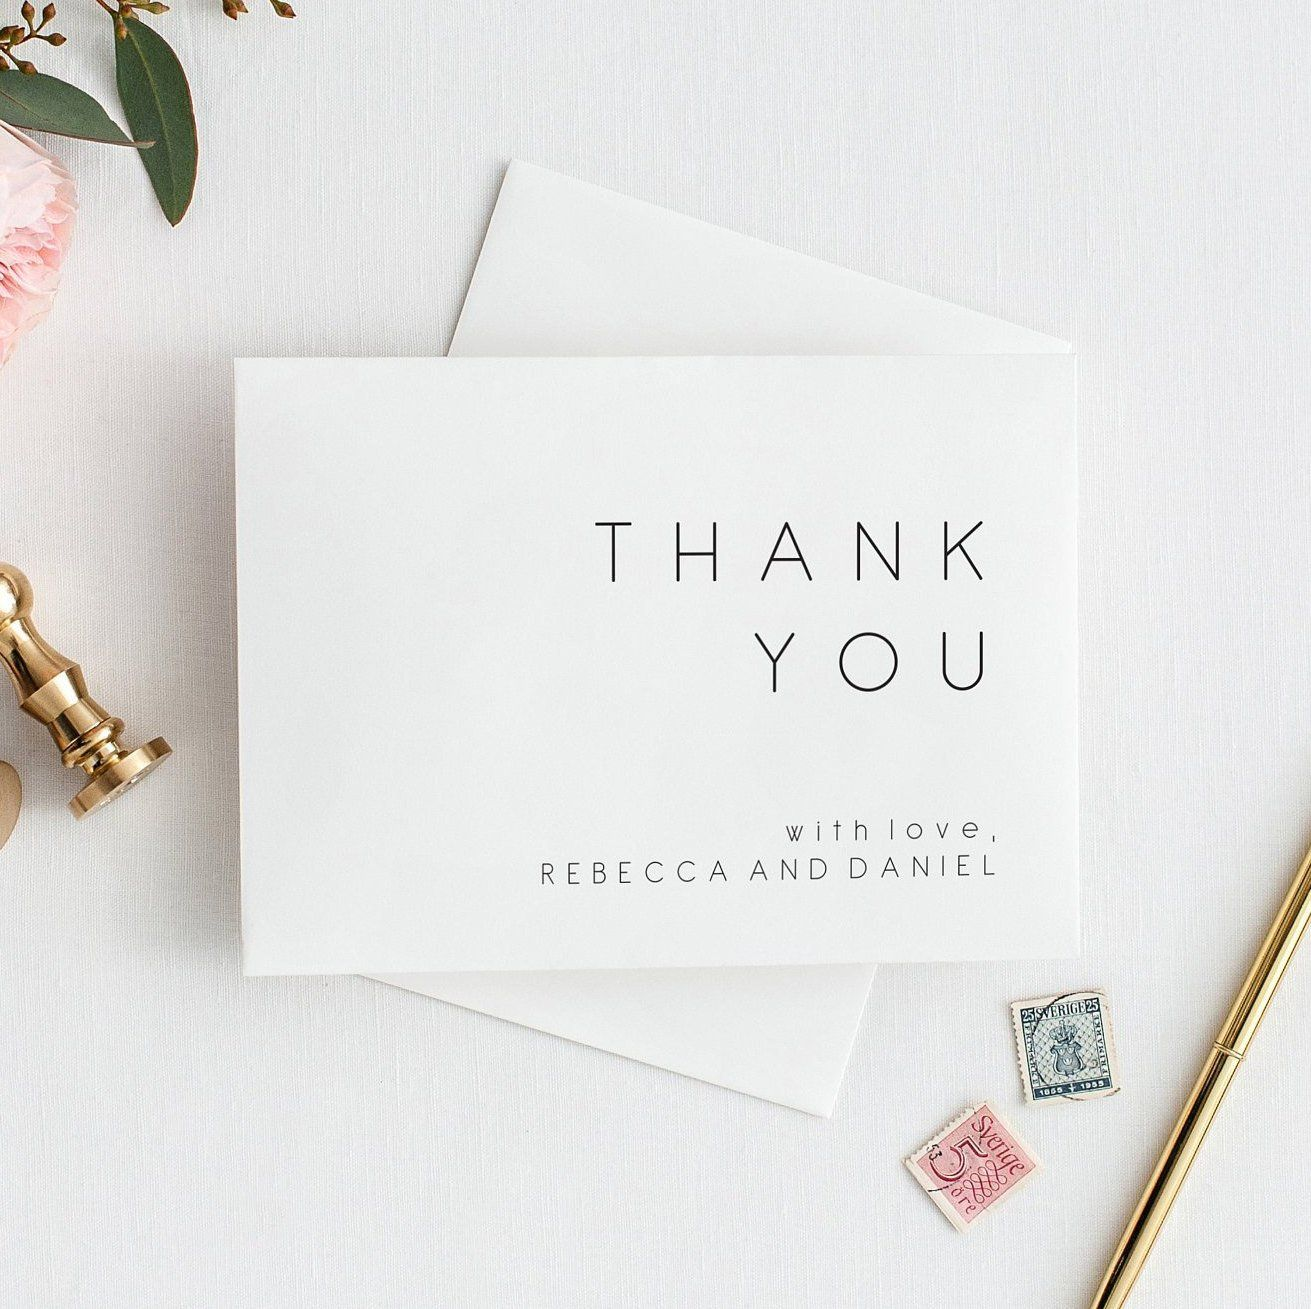 Thank You Cards Template NINA Modern Minimalist Thanks Card Printable Wedding or Bridal Shower Thank You Notes Folded and Flat